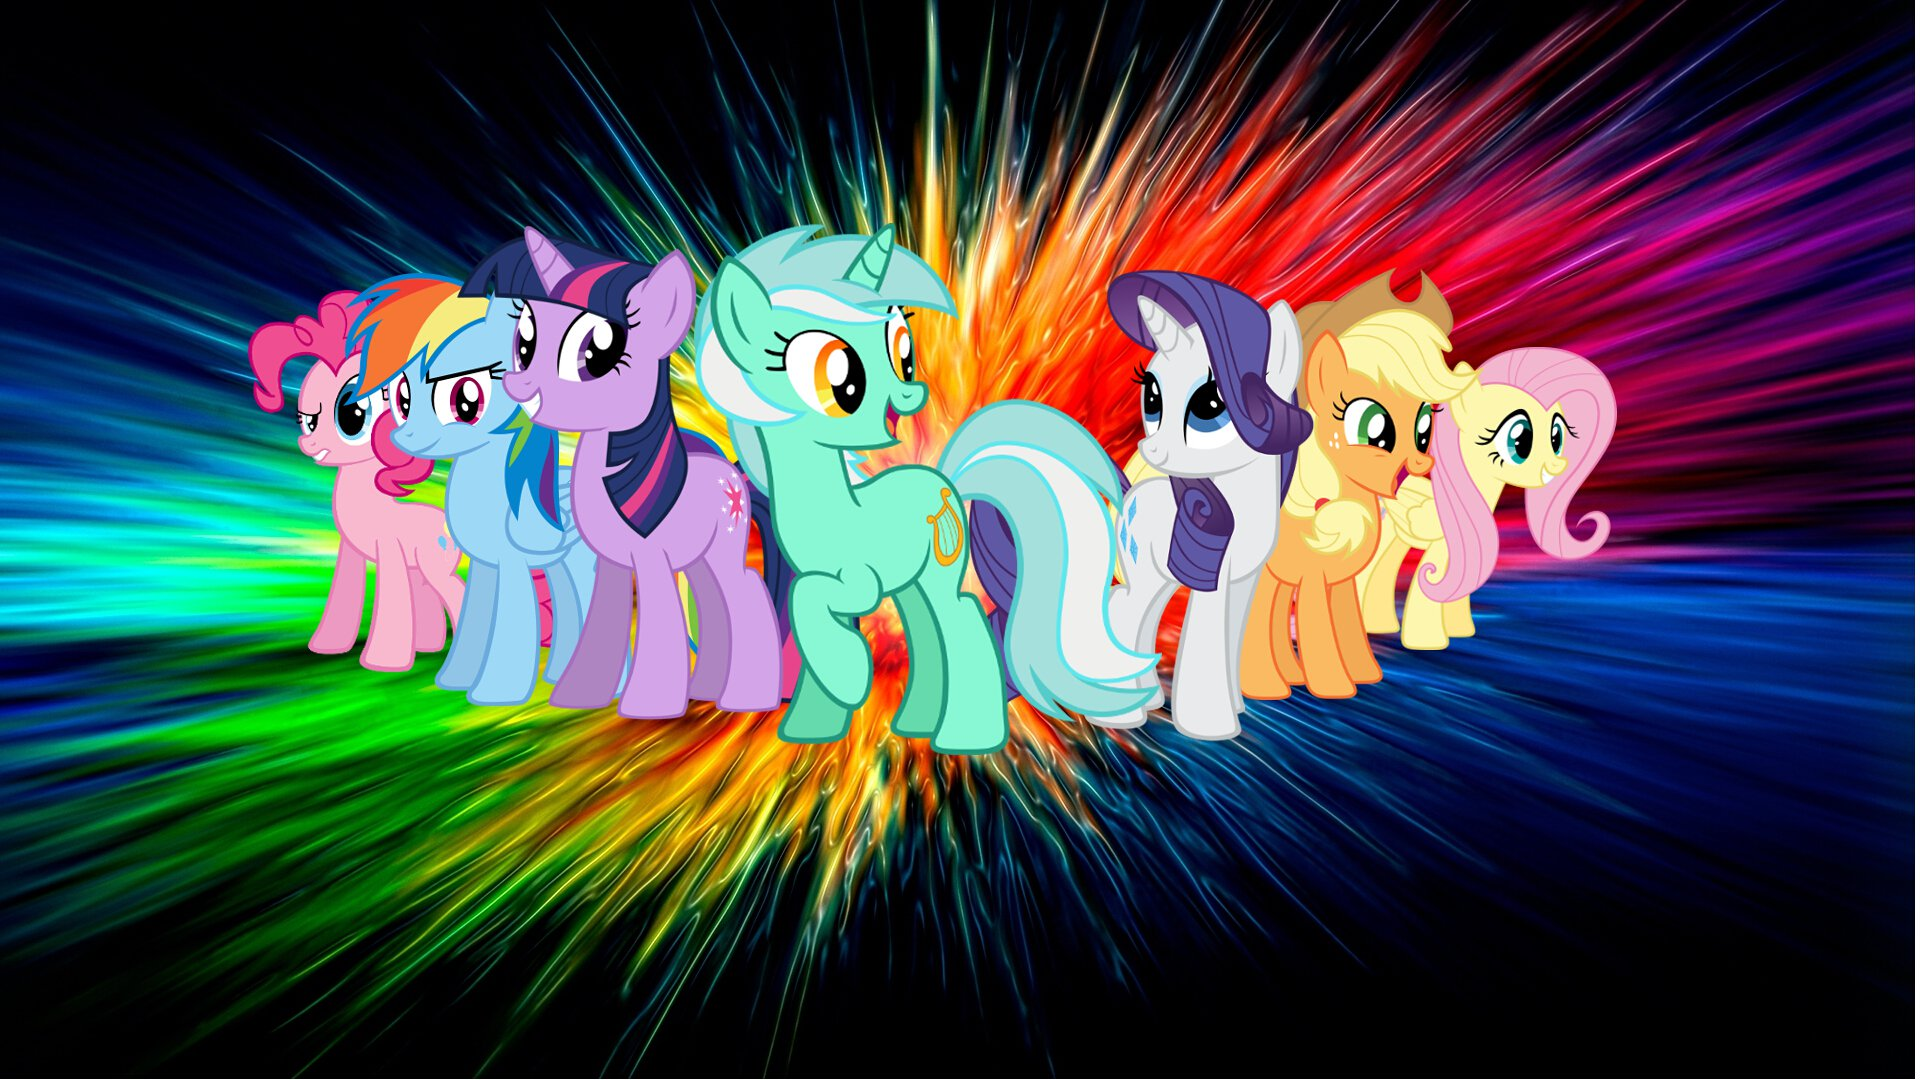 Wallpapers Of My Little Pony Wallpapersafari